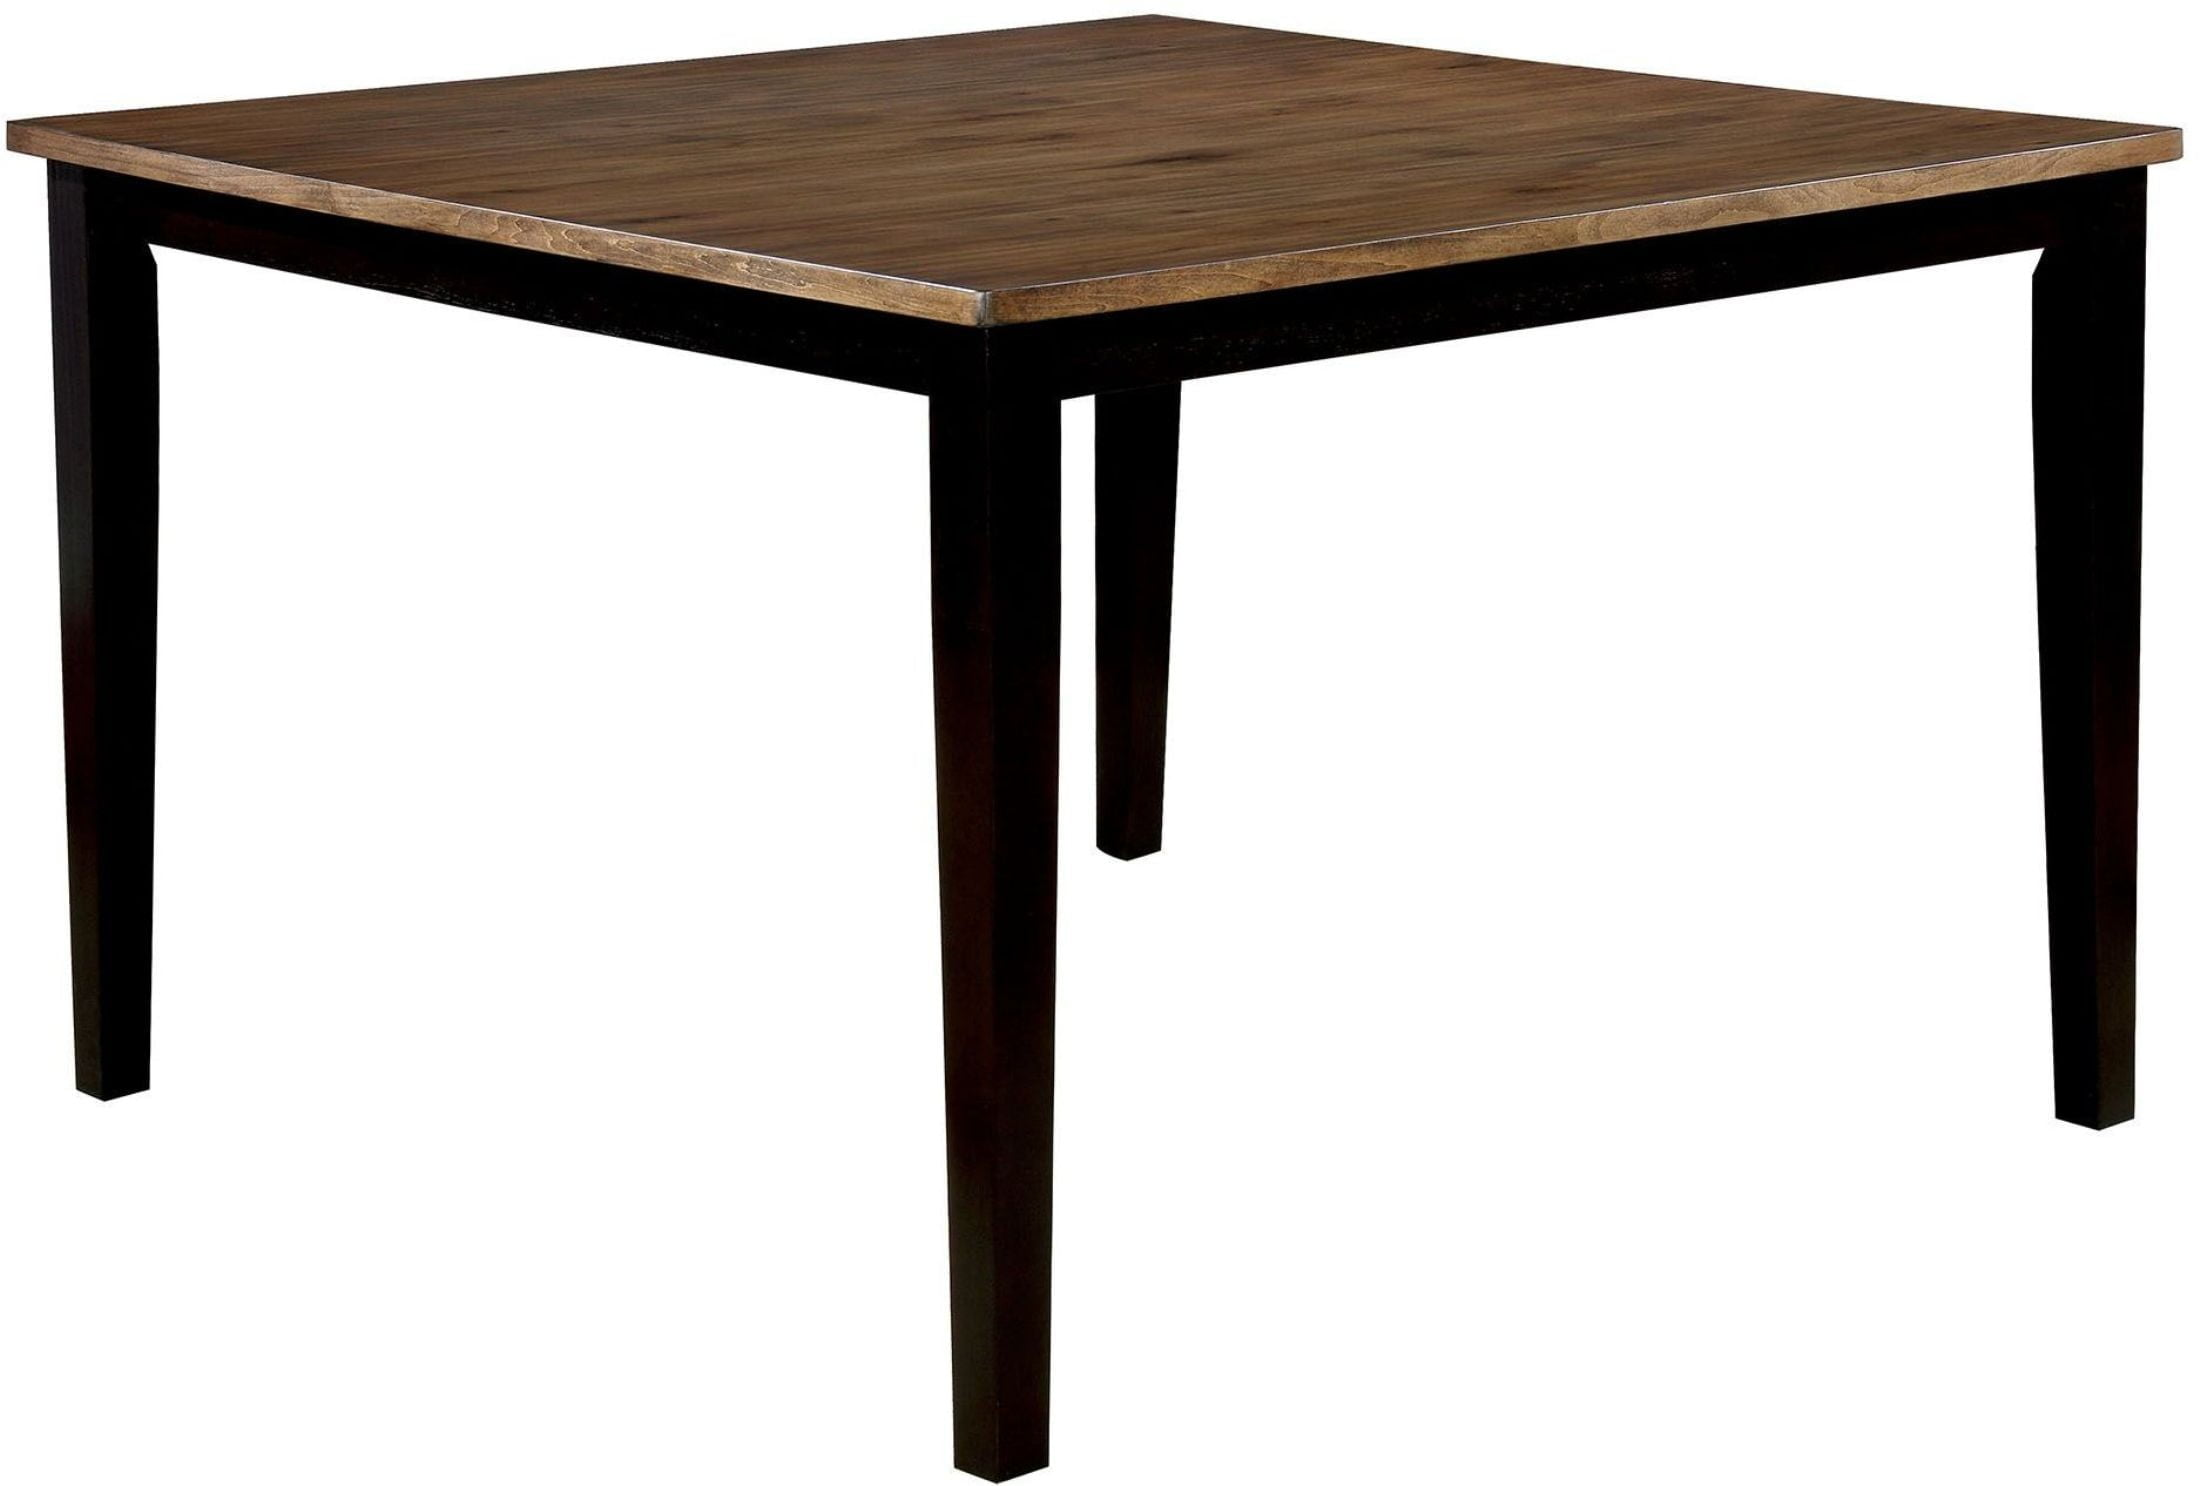 Dining Table Height Cm Izidora Rustic Oak And Espresso Counter Height Dining